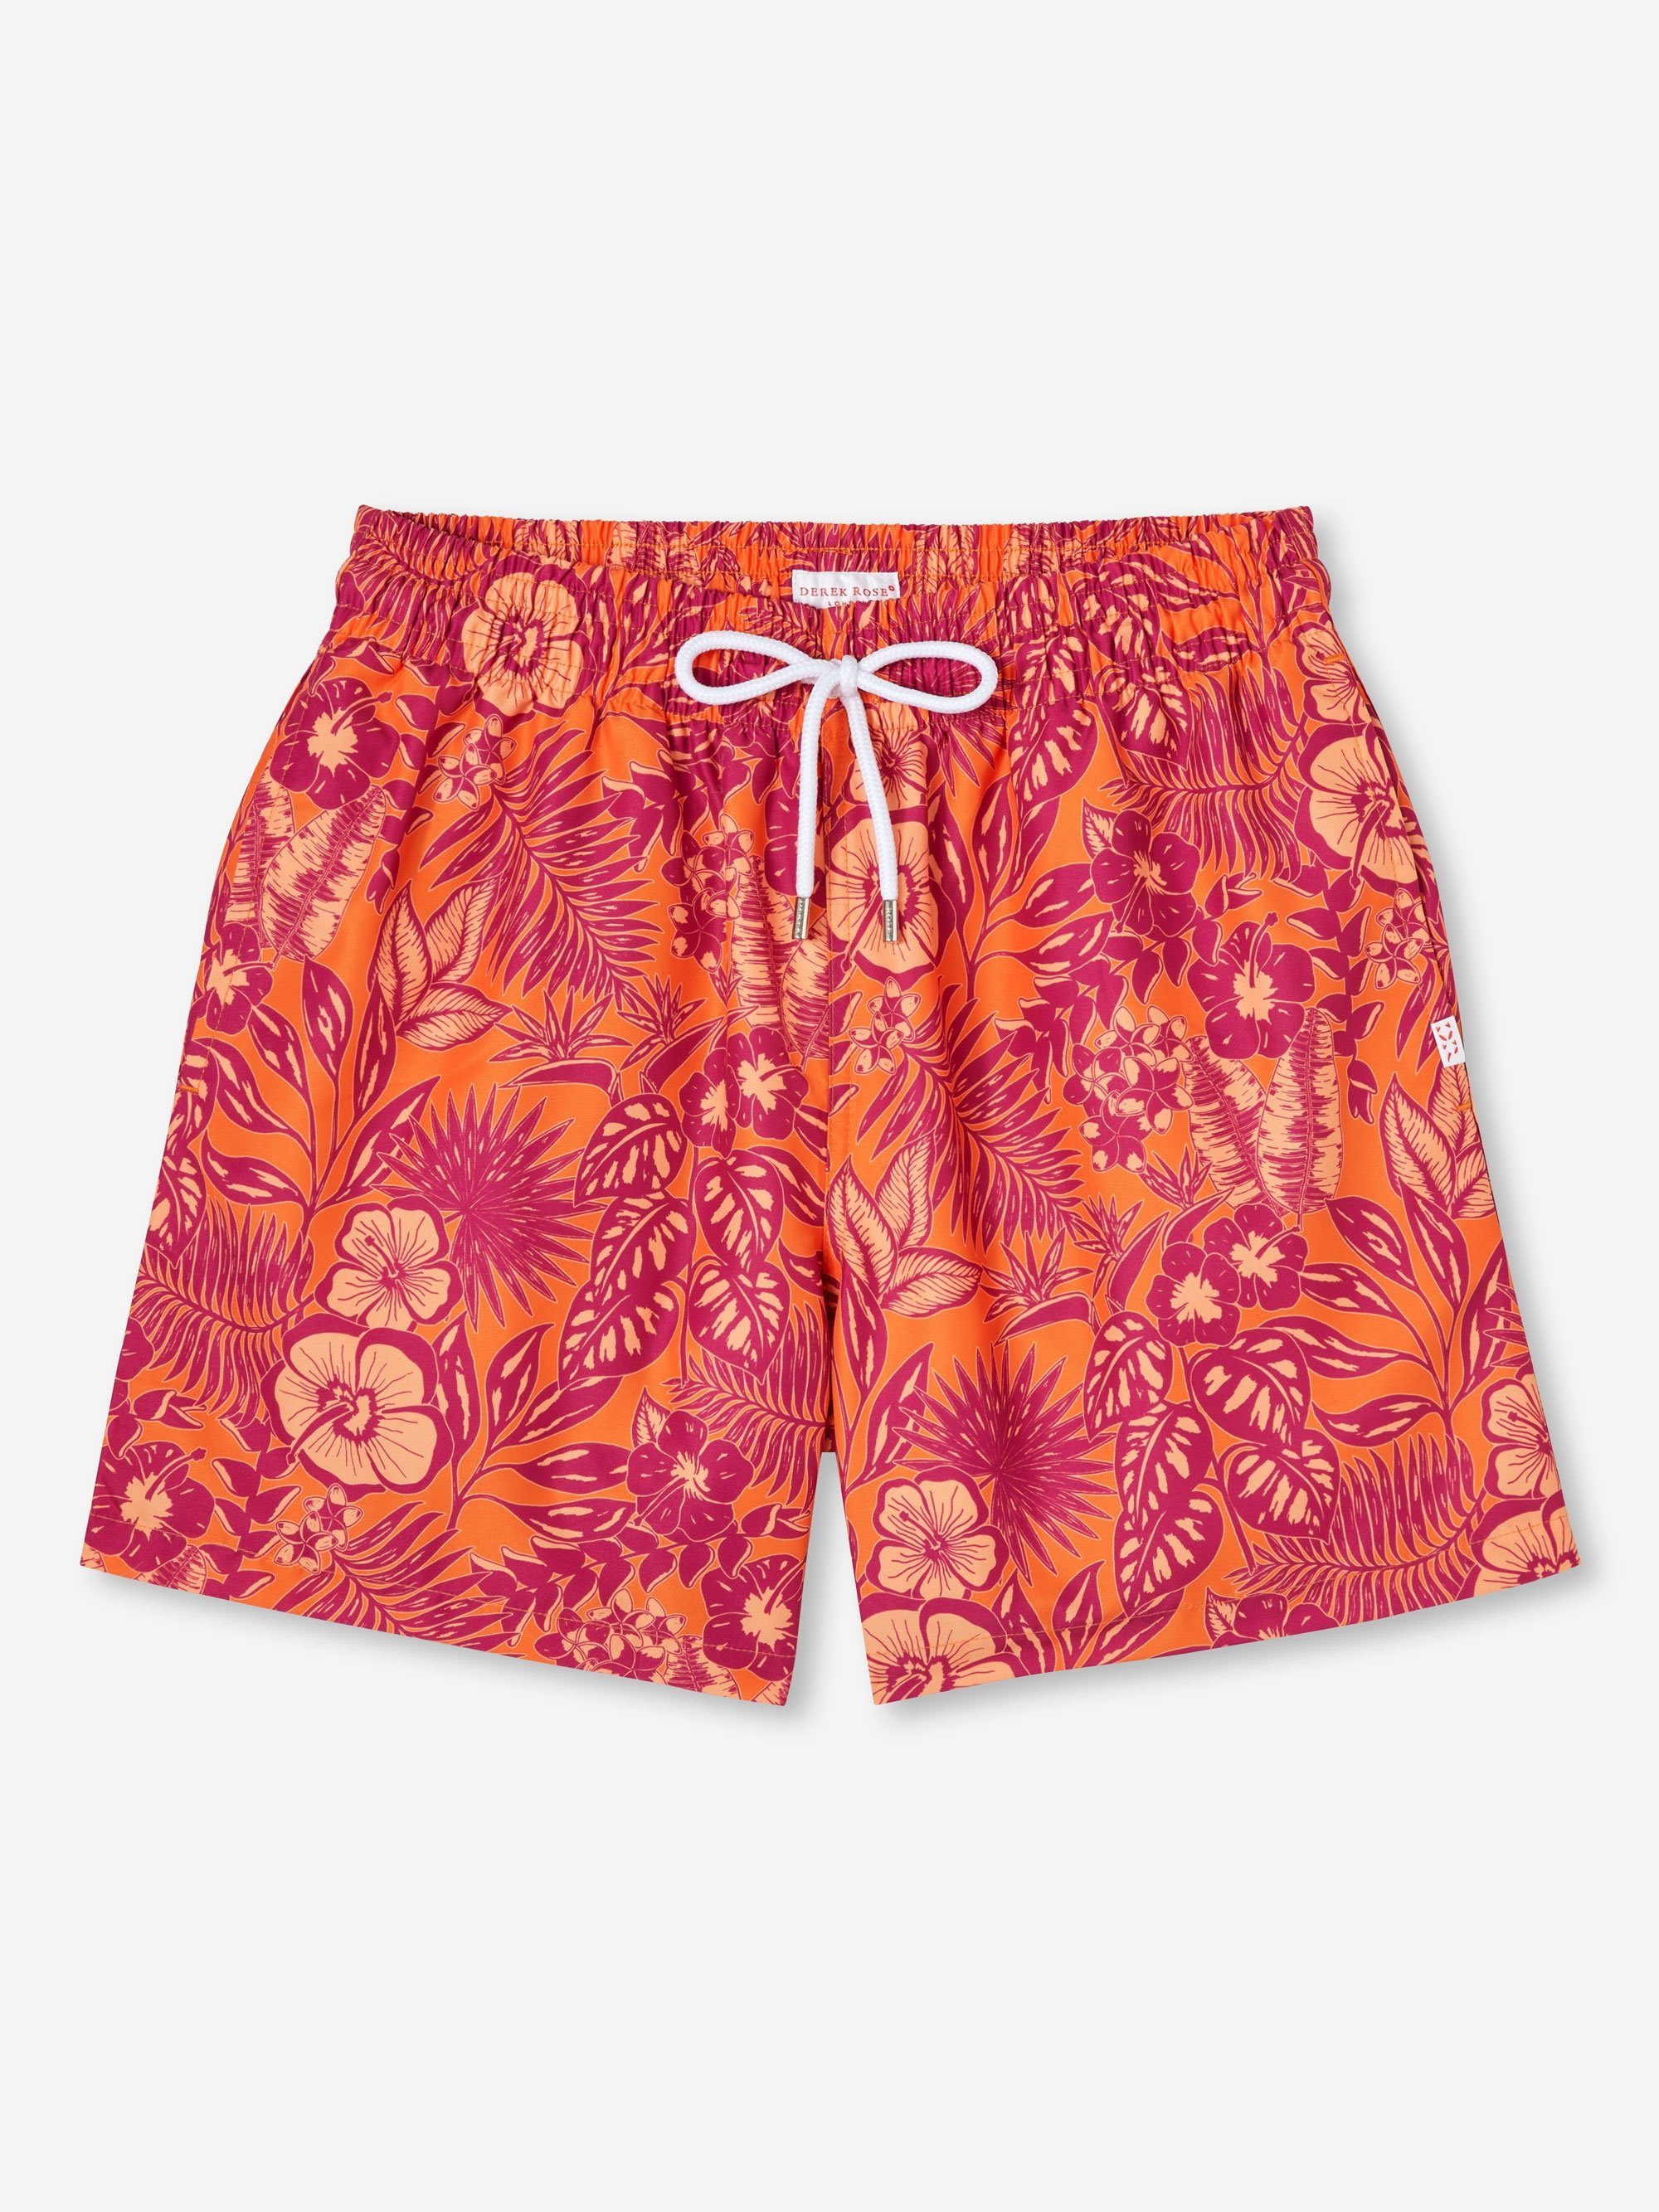 Men's Short Classic Fit Swim Shorts Maui 34 Orange